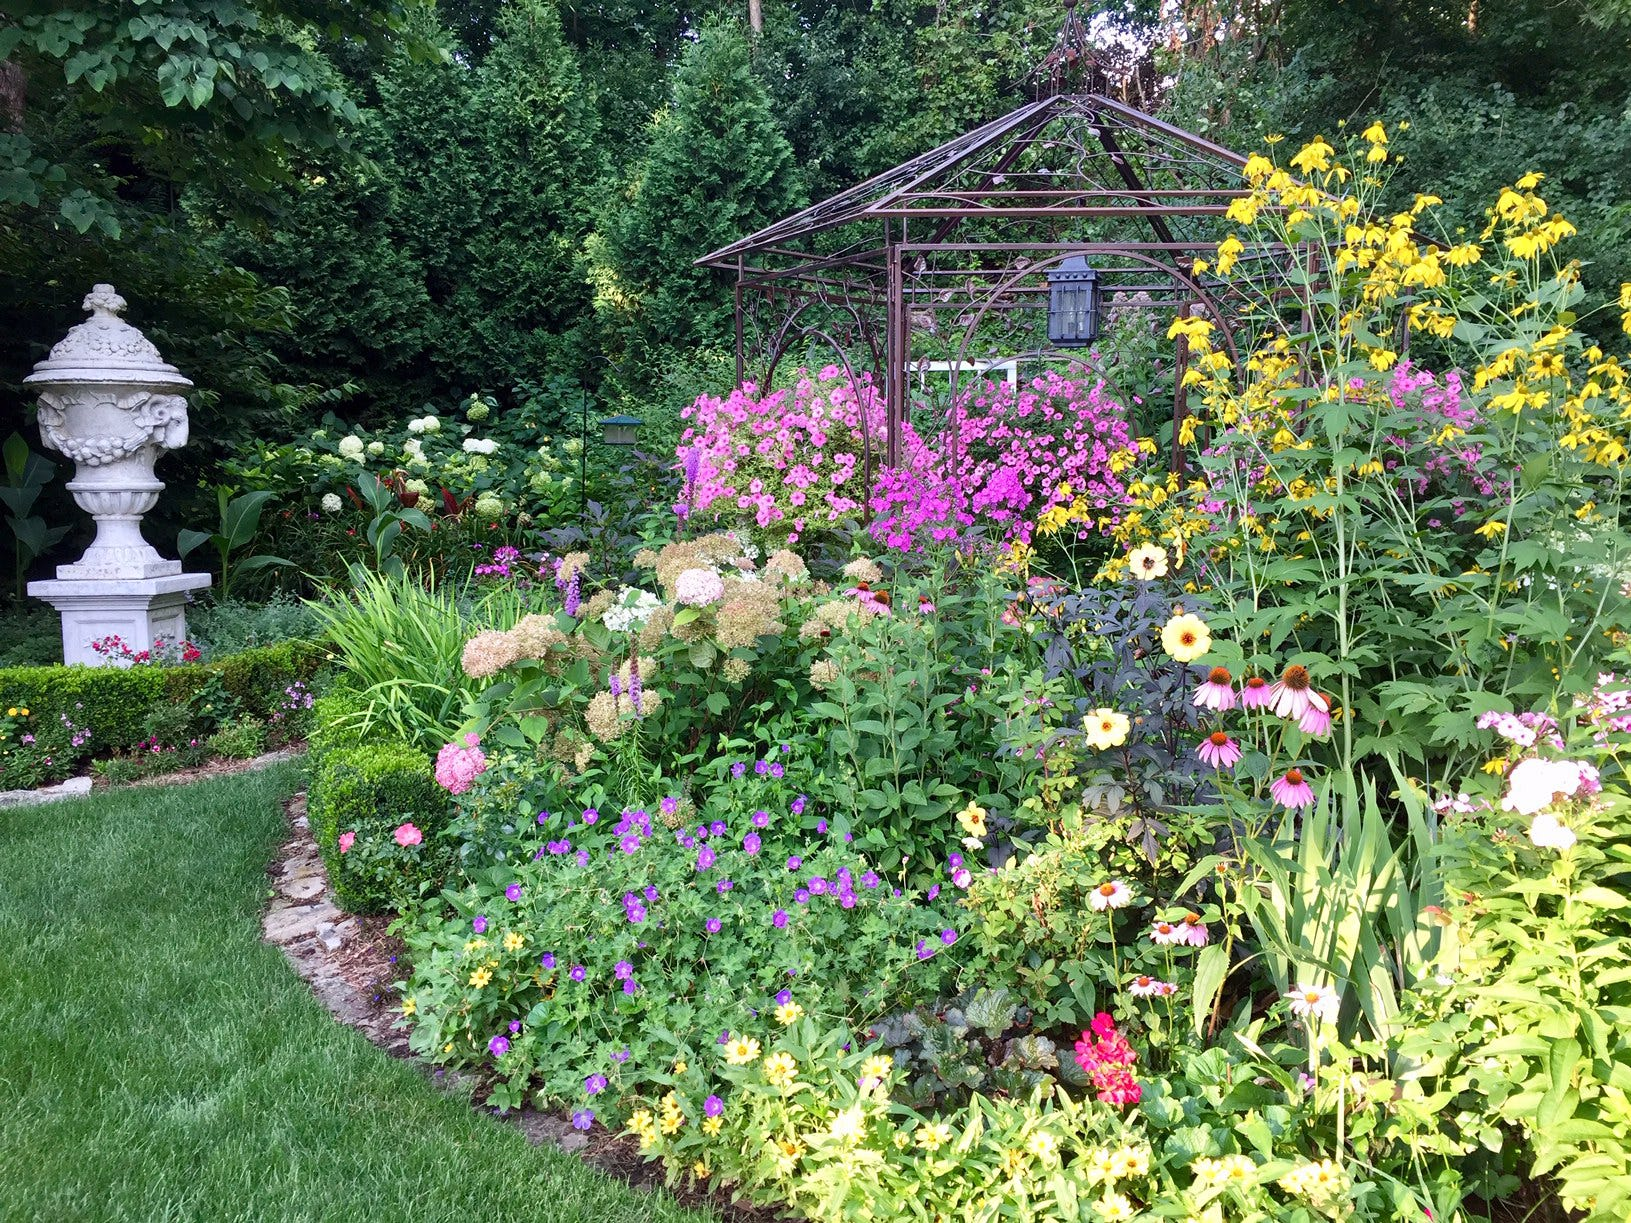 The Wissings' garden explodes with color in the summer.